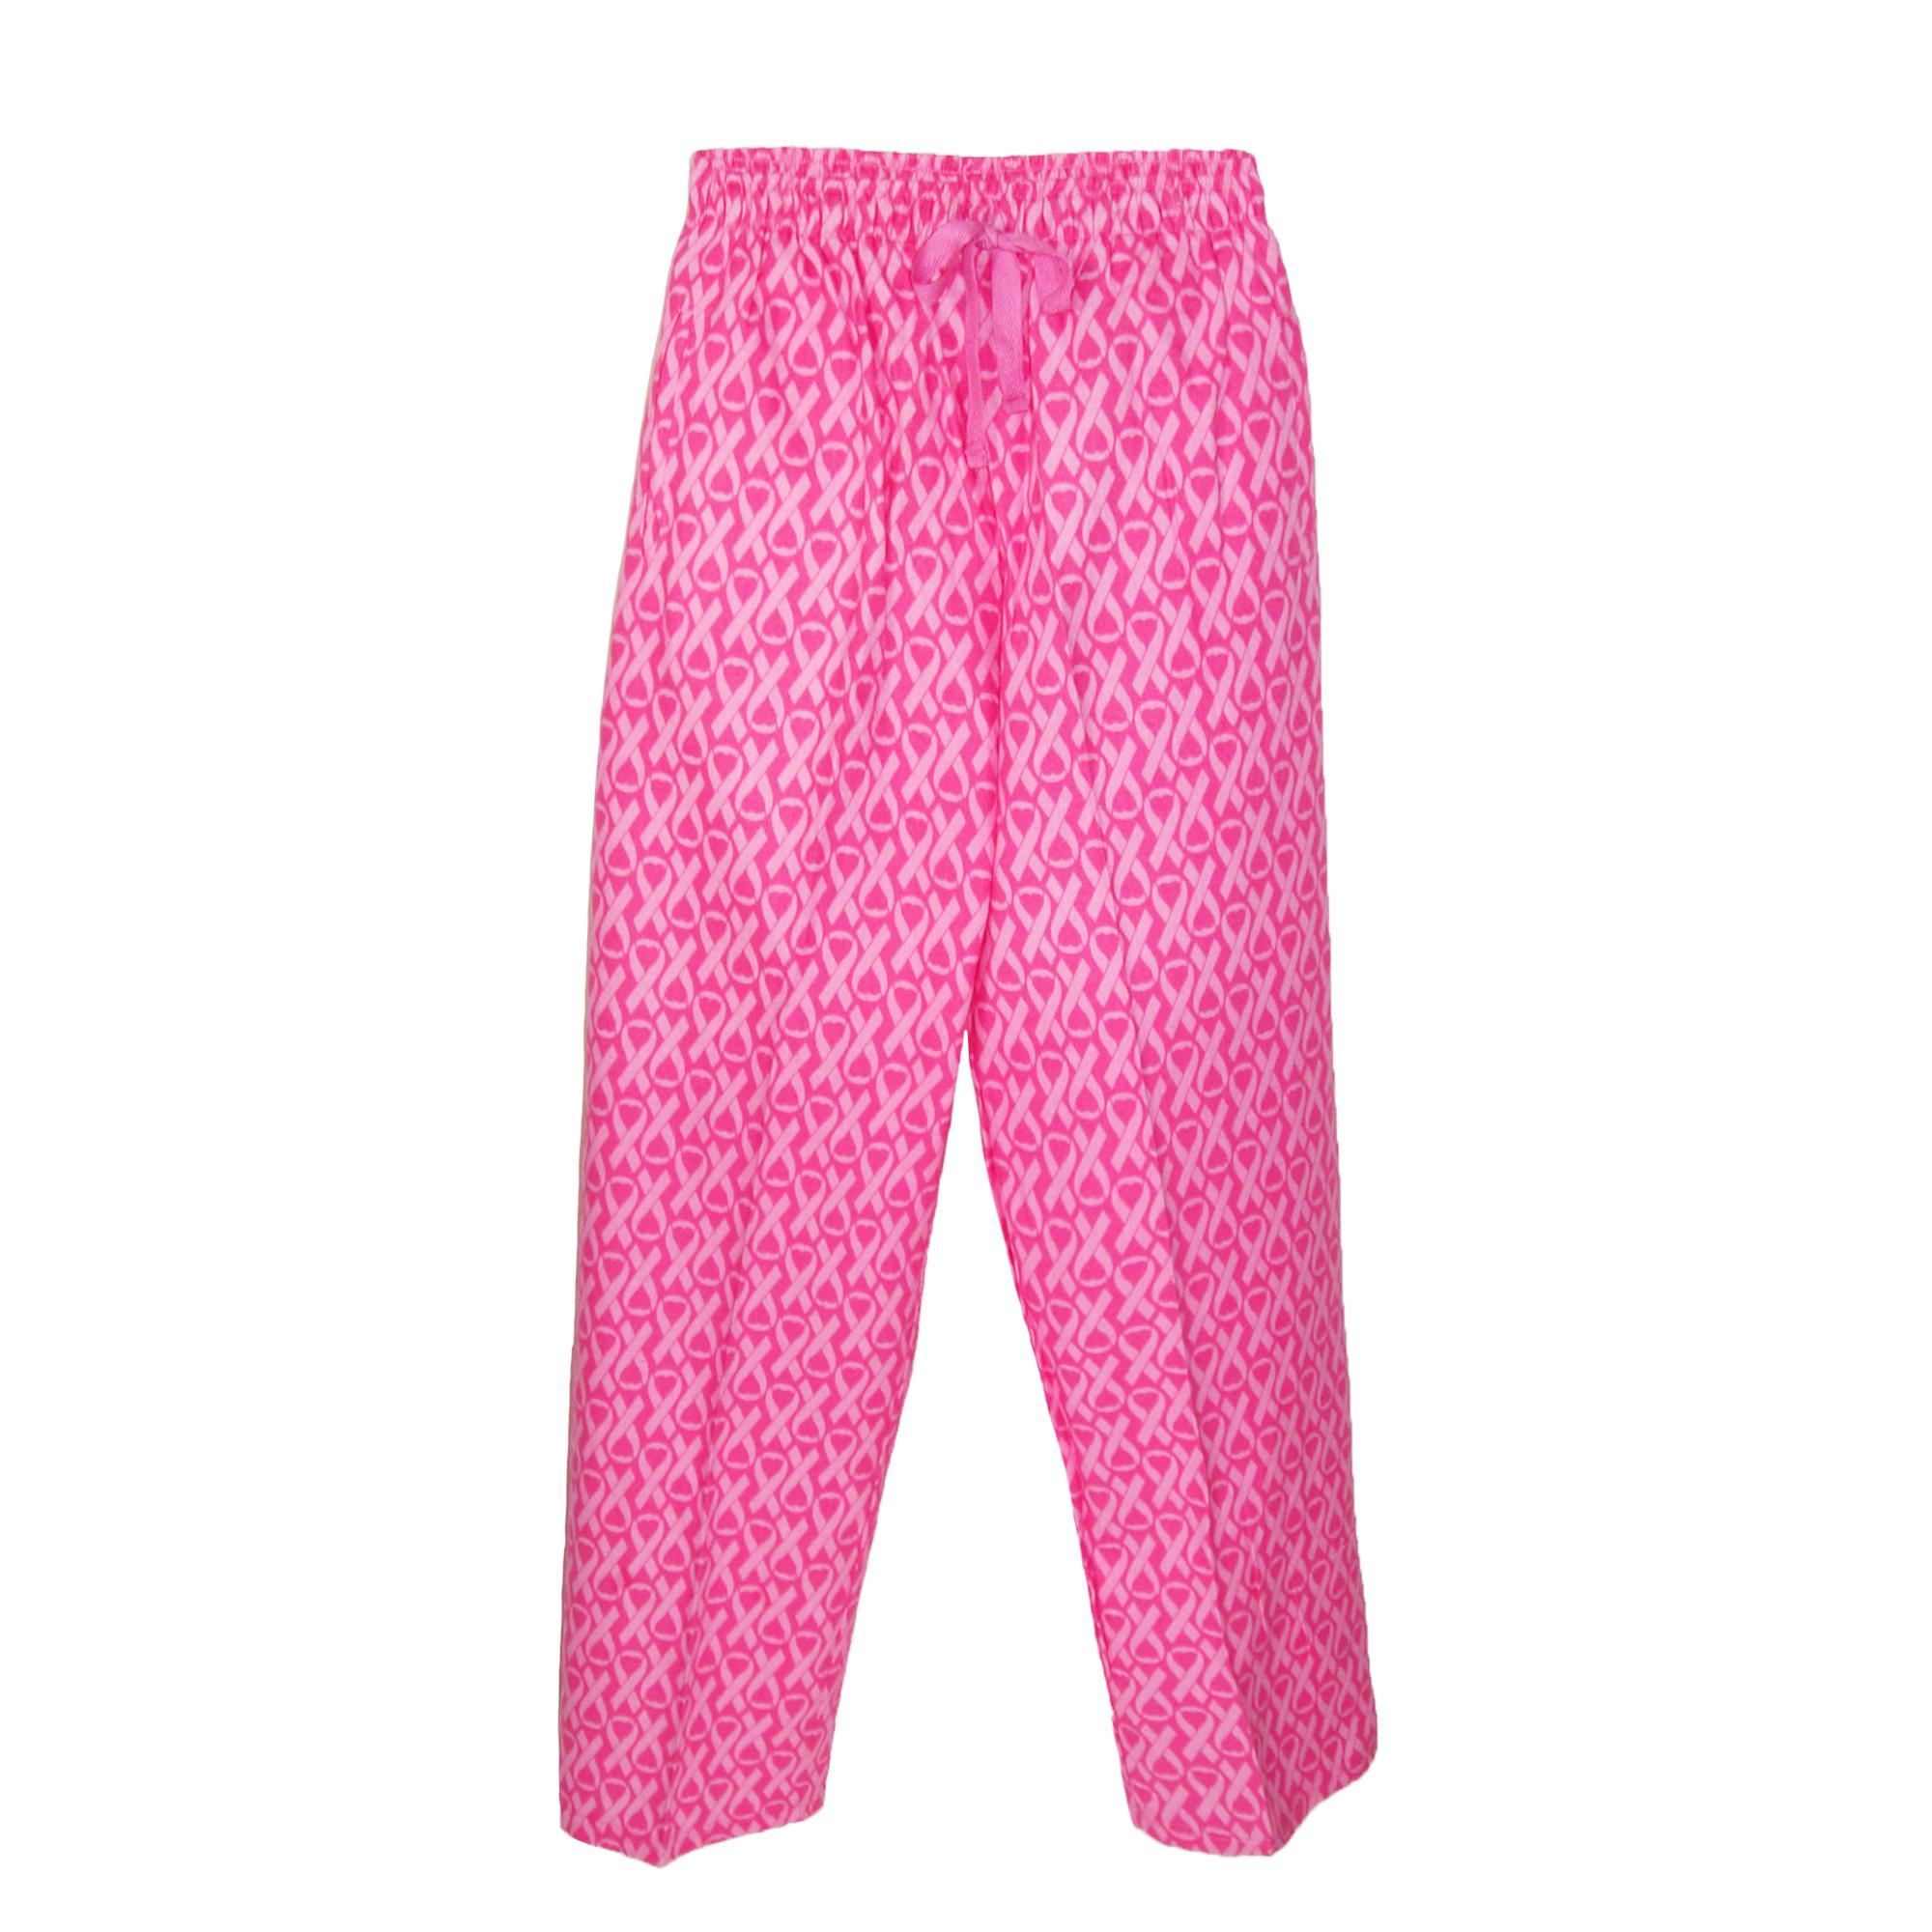 Boxercraft Womens Flannel Breast Cancer Awareness Ribbon Pajama Pants